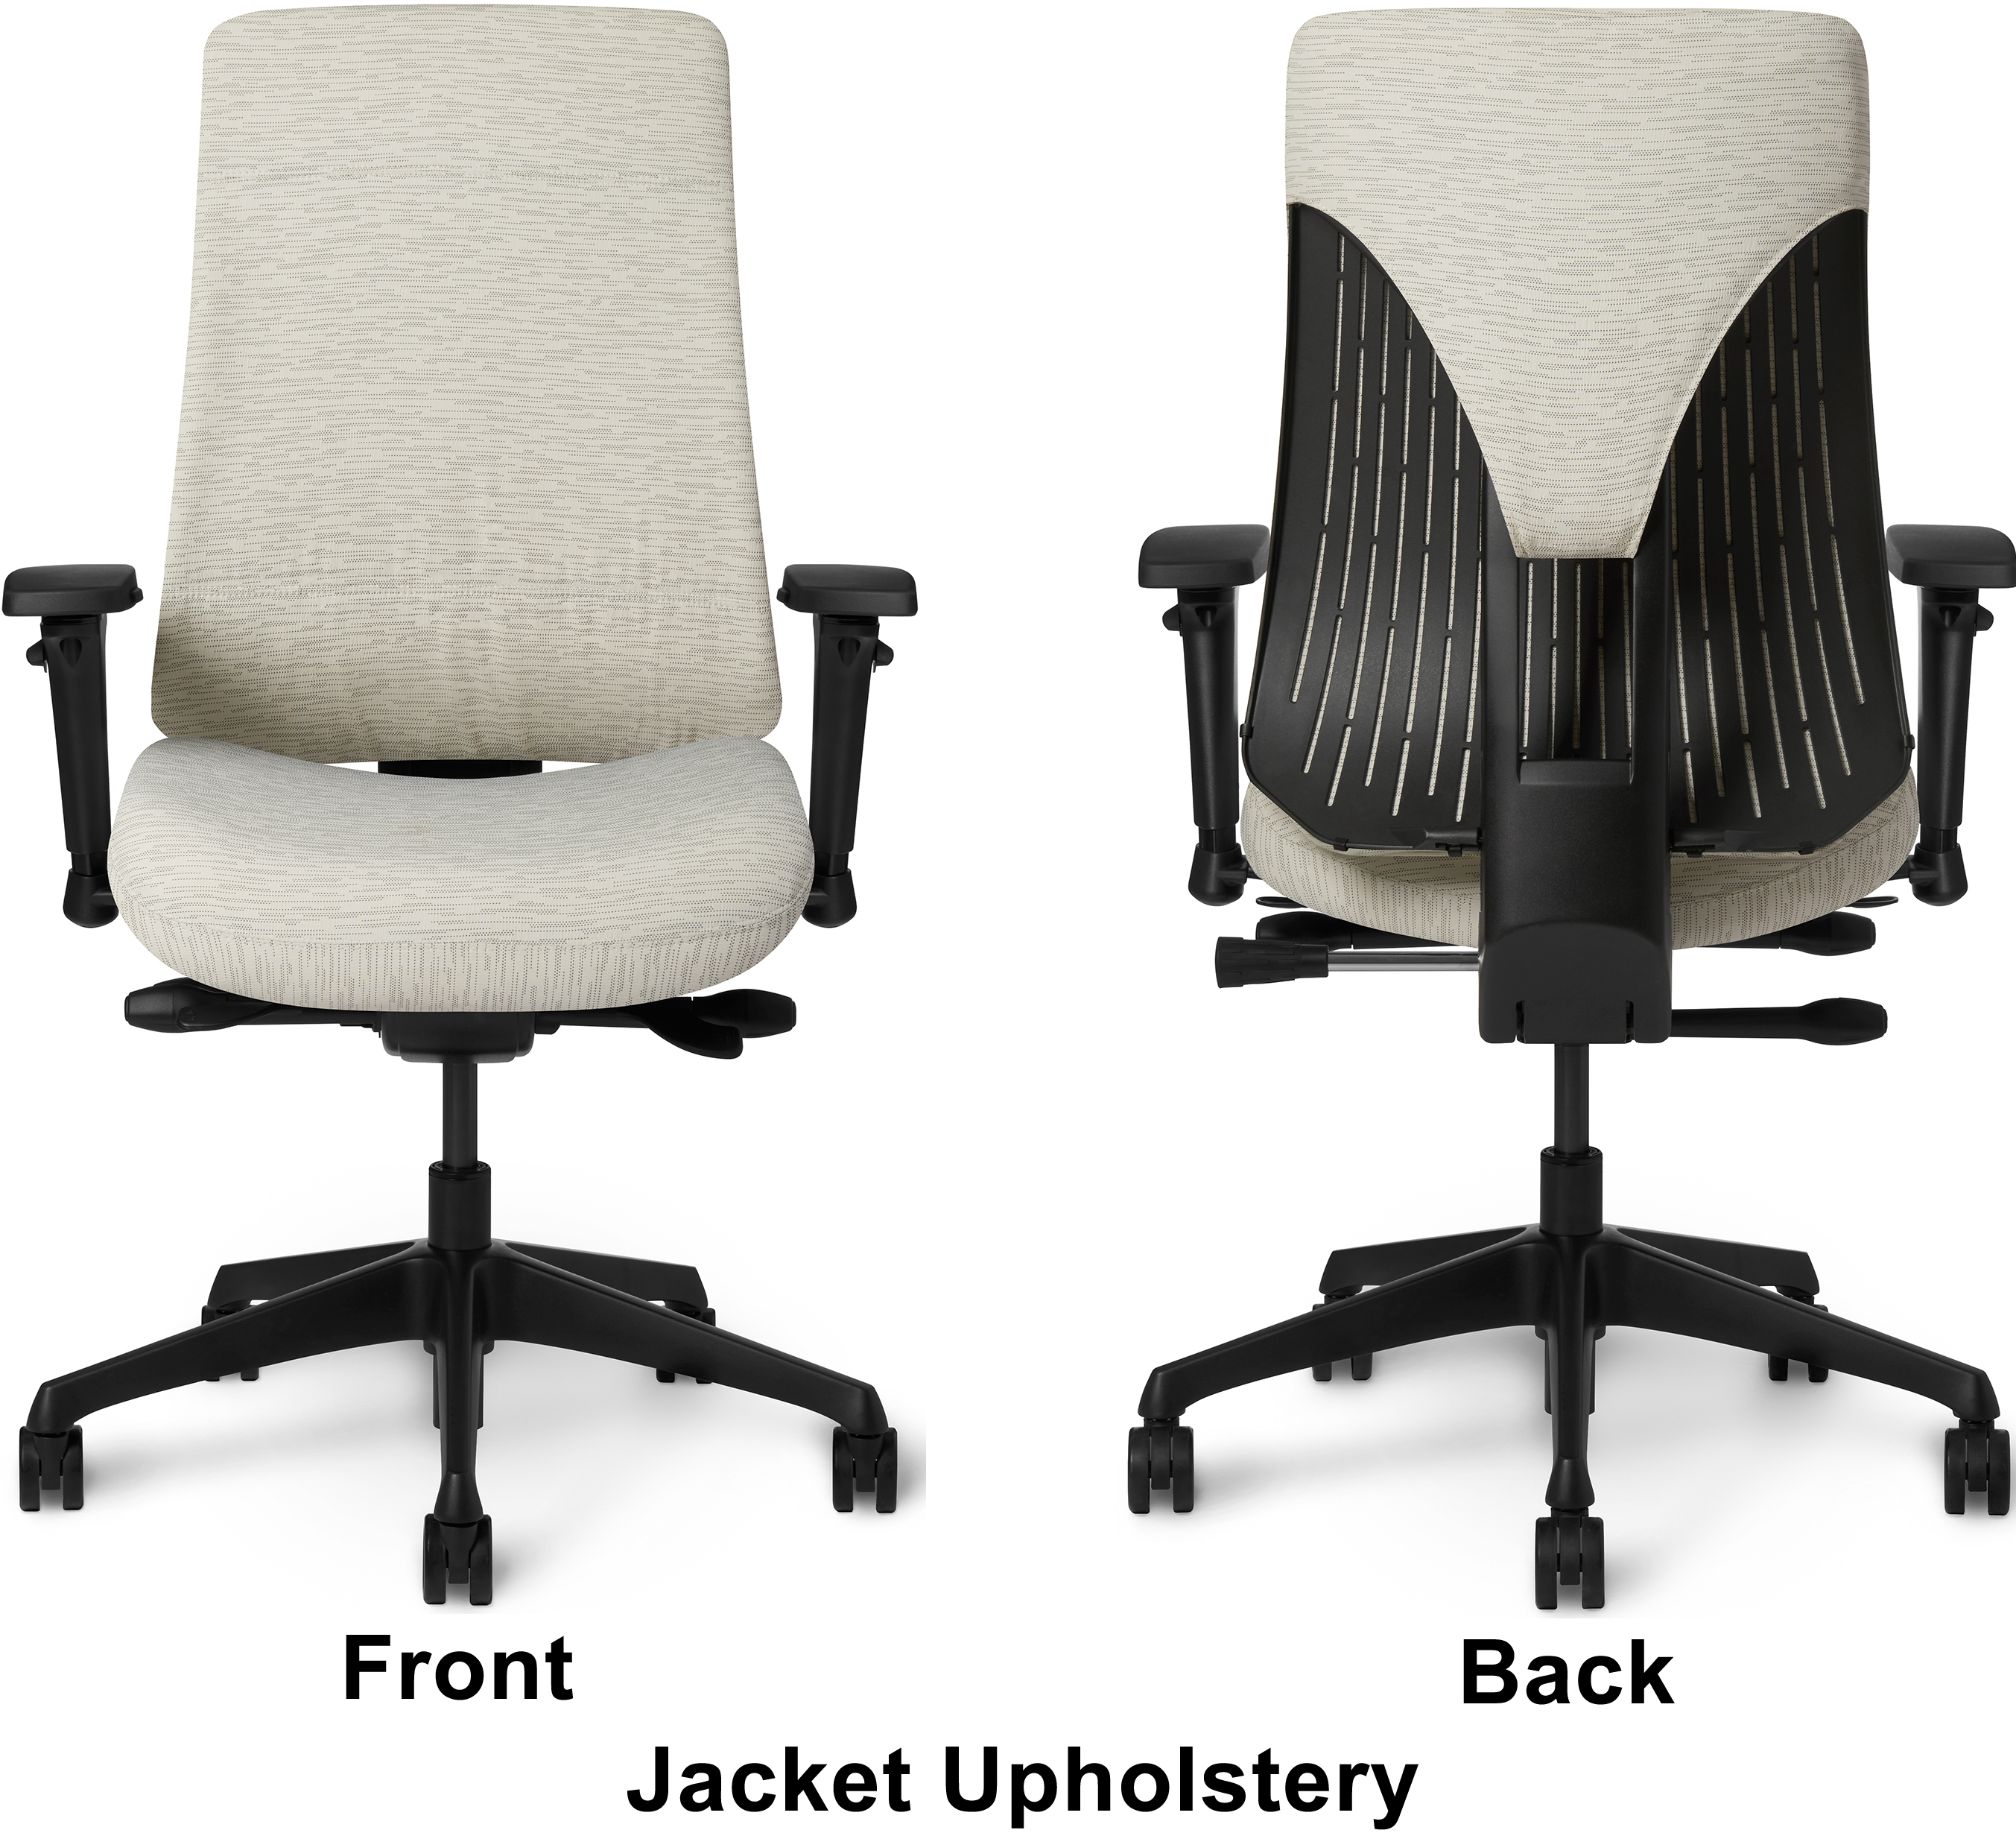 Truly- Jacket Upholstery